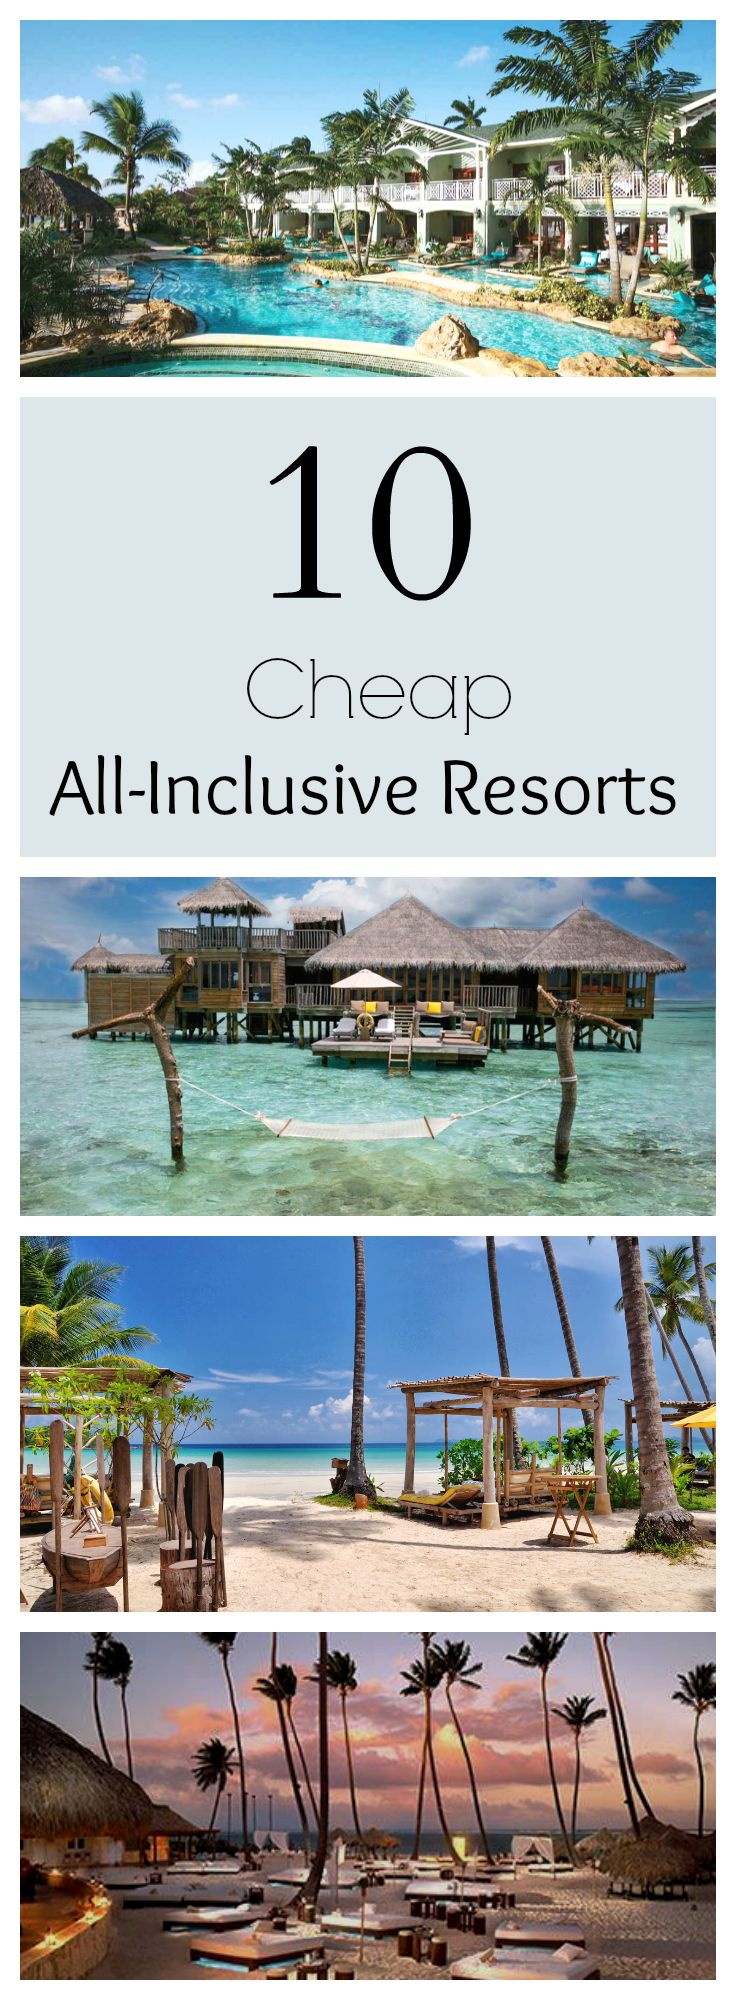 There's no gloominess at these 10 unbelievably cheap all-inclusive resorts this Fall... Just Summer forever